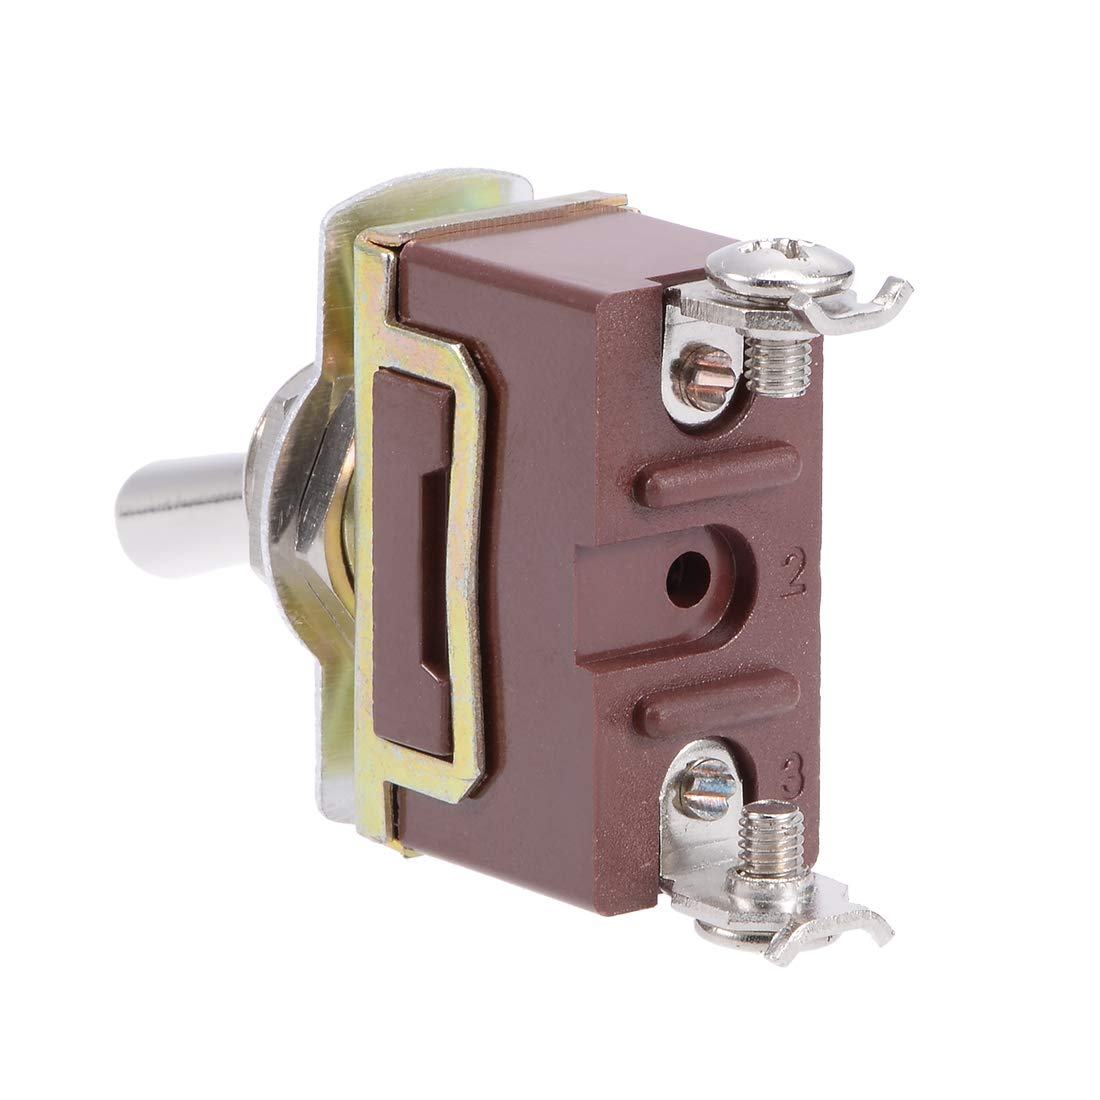 uxcell SPST Rocker Toggle Switch Self Locking Heavy-Duty 15A 250V 20A 125V 2P ON//Off Switch Metal Bat Waterproof Boot Cap Cover 2pcs